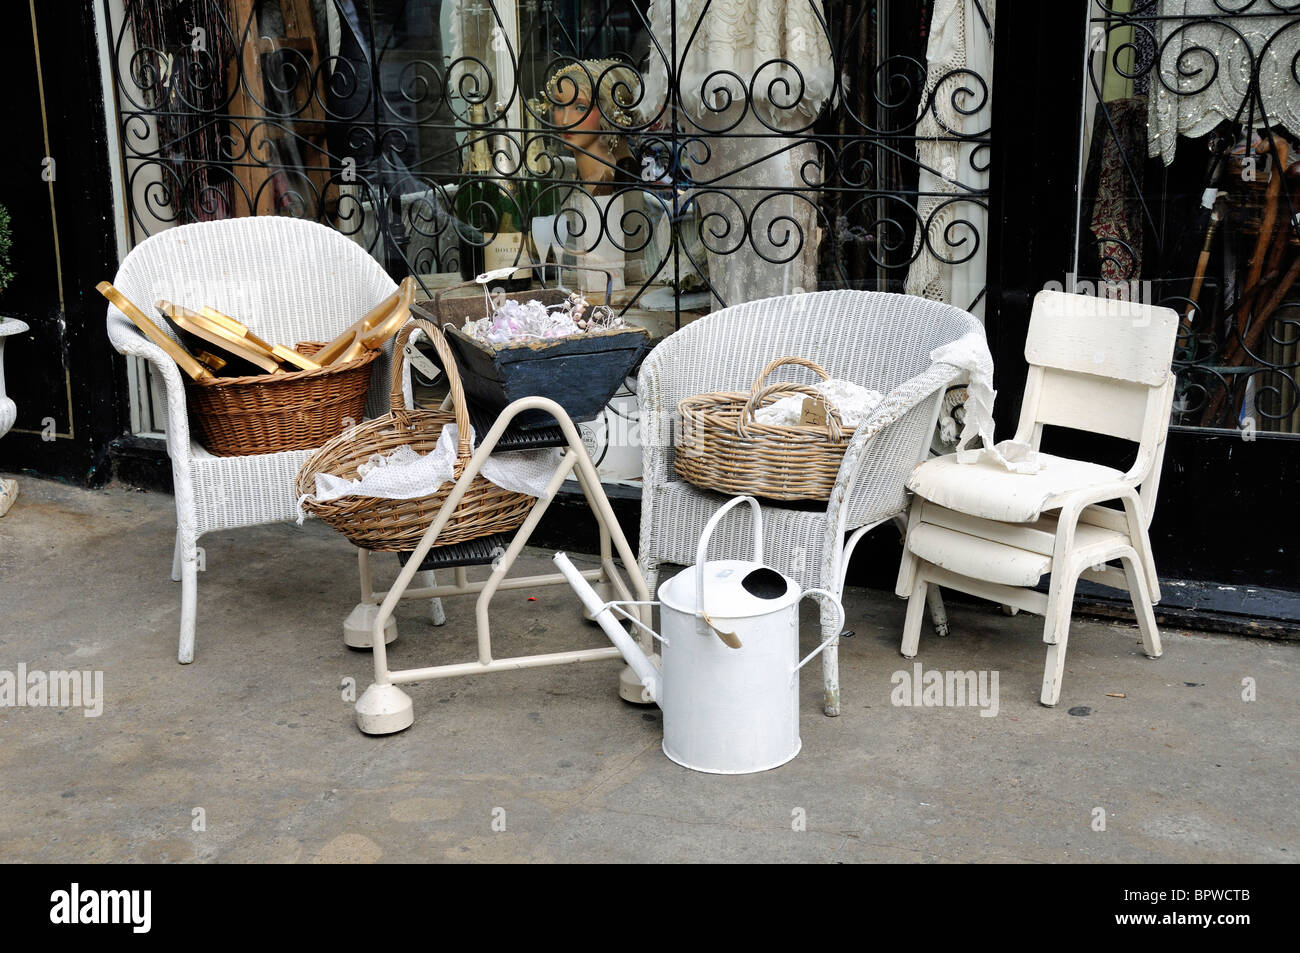 Display Of Vintage Items Outside Antique Shop Camden Passage Stock Photo Alamy